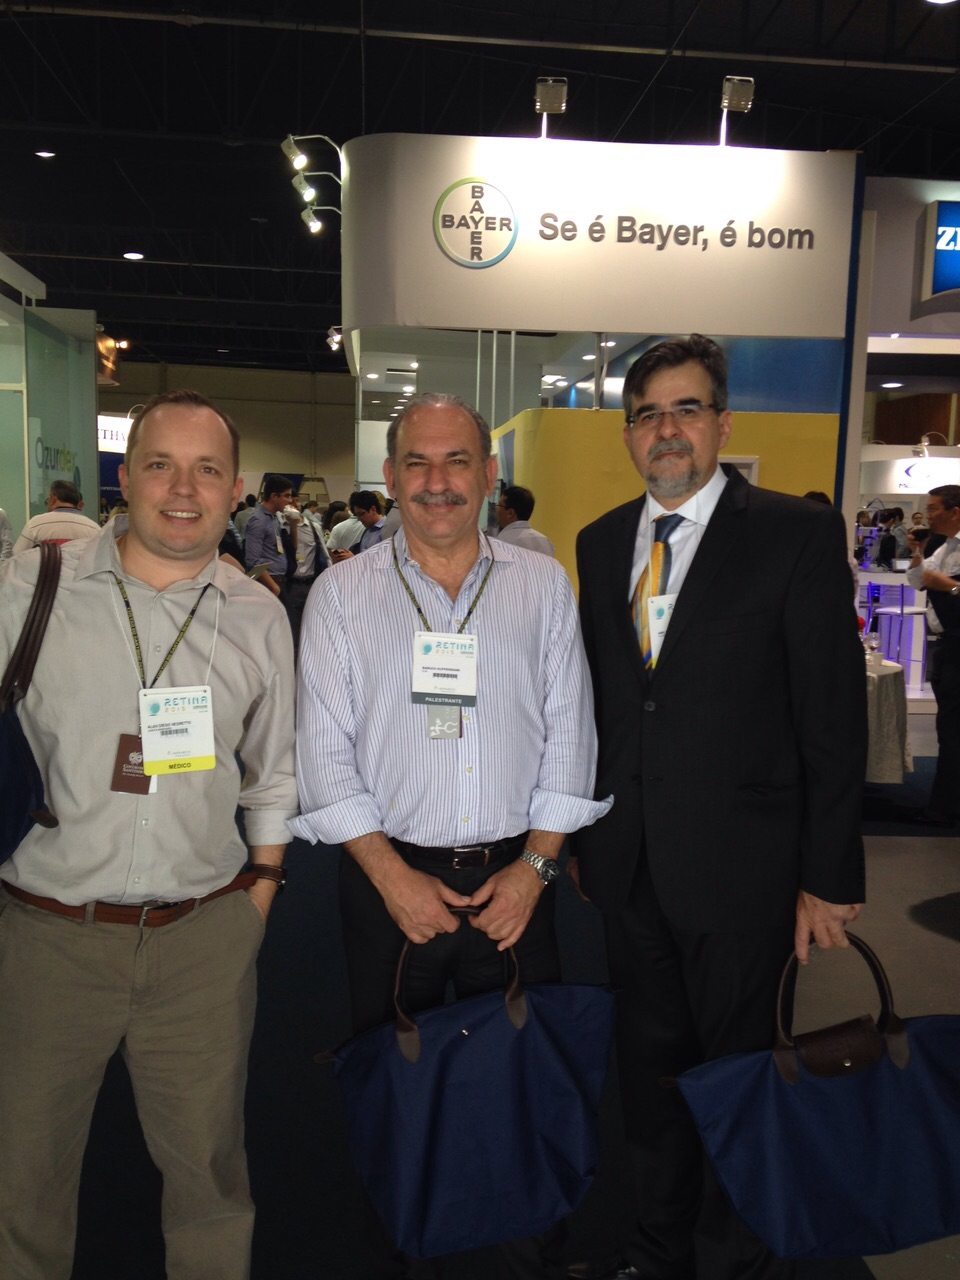 Dr. Alan Diego Negretto (Santa Maria - RS), Dr. Baruch Kuppermann (Irwine -CA), Dr. Amilton Irigaray (Joinville - SC)